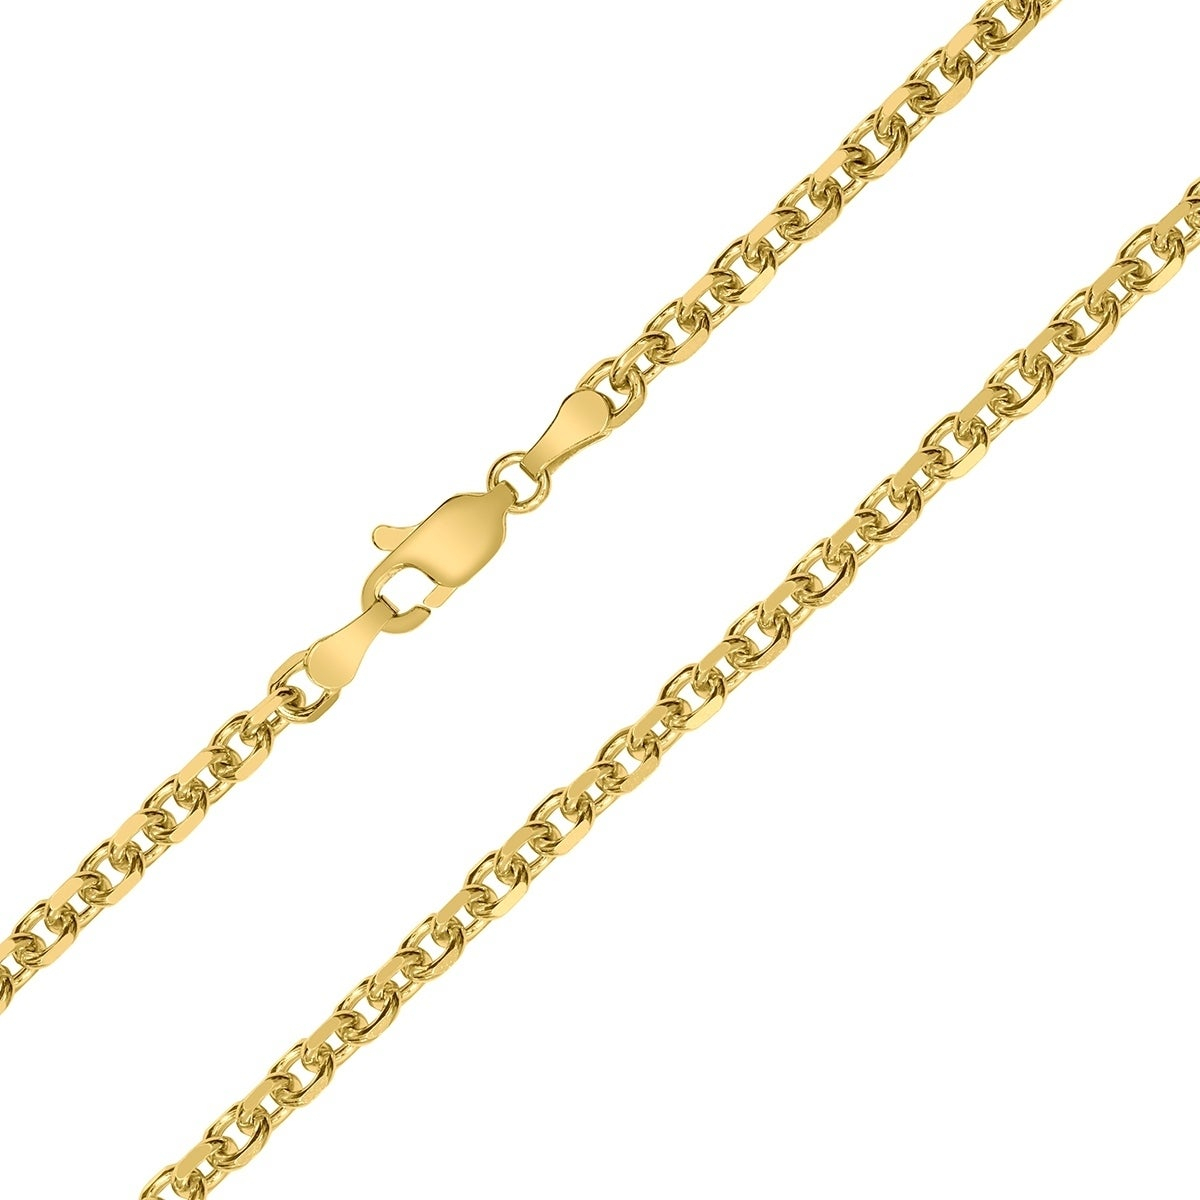 14K Yellow Gold 4Mm Diamond Cut Classic Oval Cable Chain With Lobster Clasp  – 20 Inch Intended For Most Recent Classic Cable Chain Necklaces (View 3 of 25)